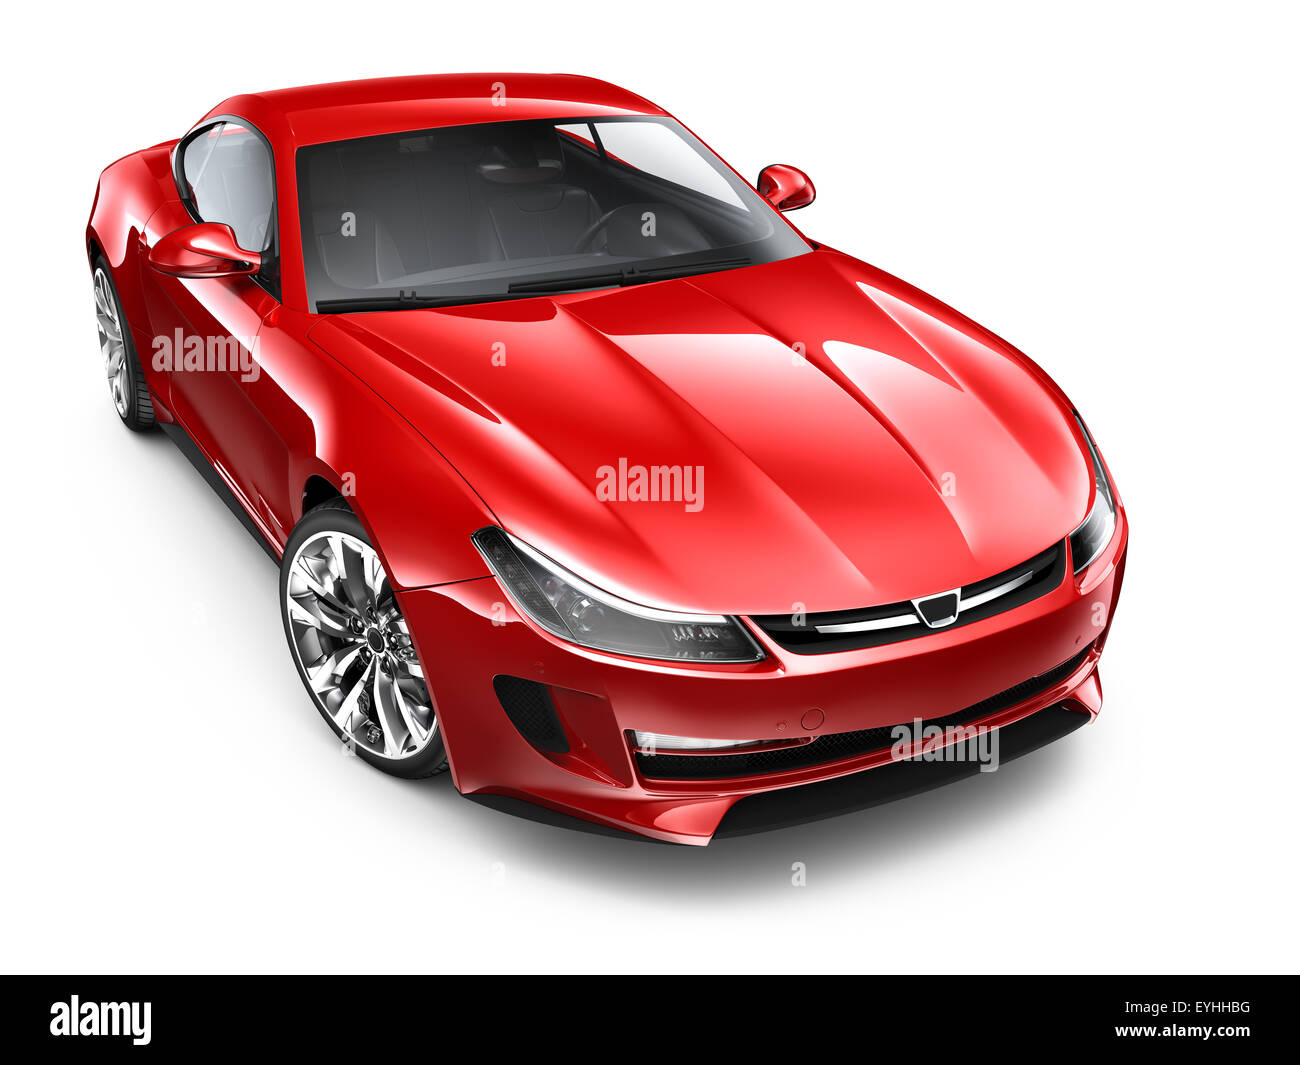 Isolated red sports car on white background - Stock Image